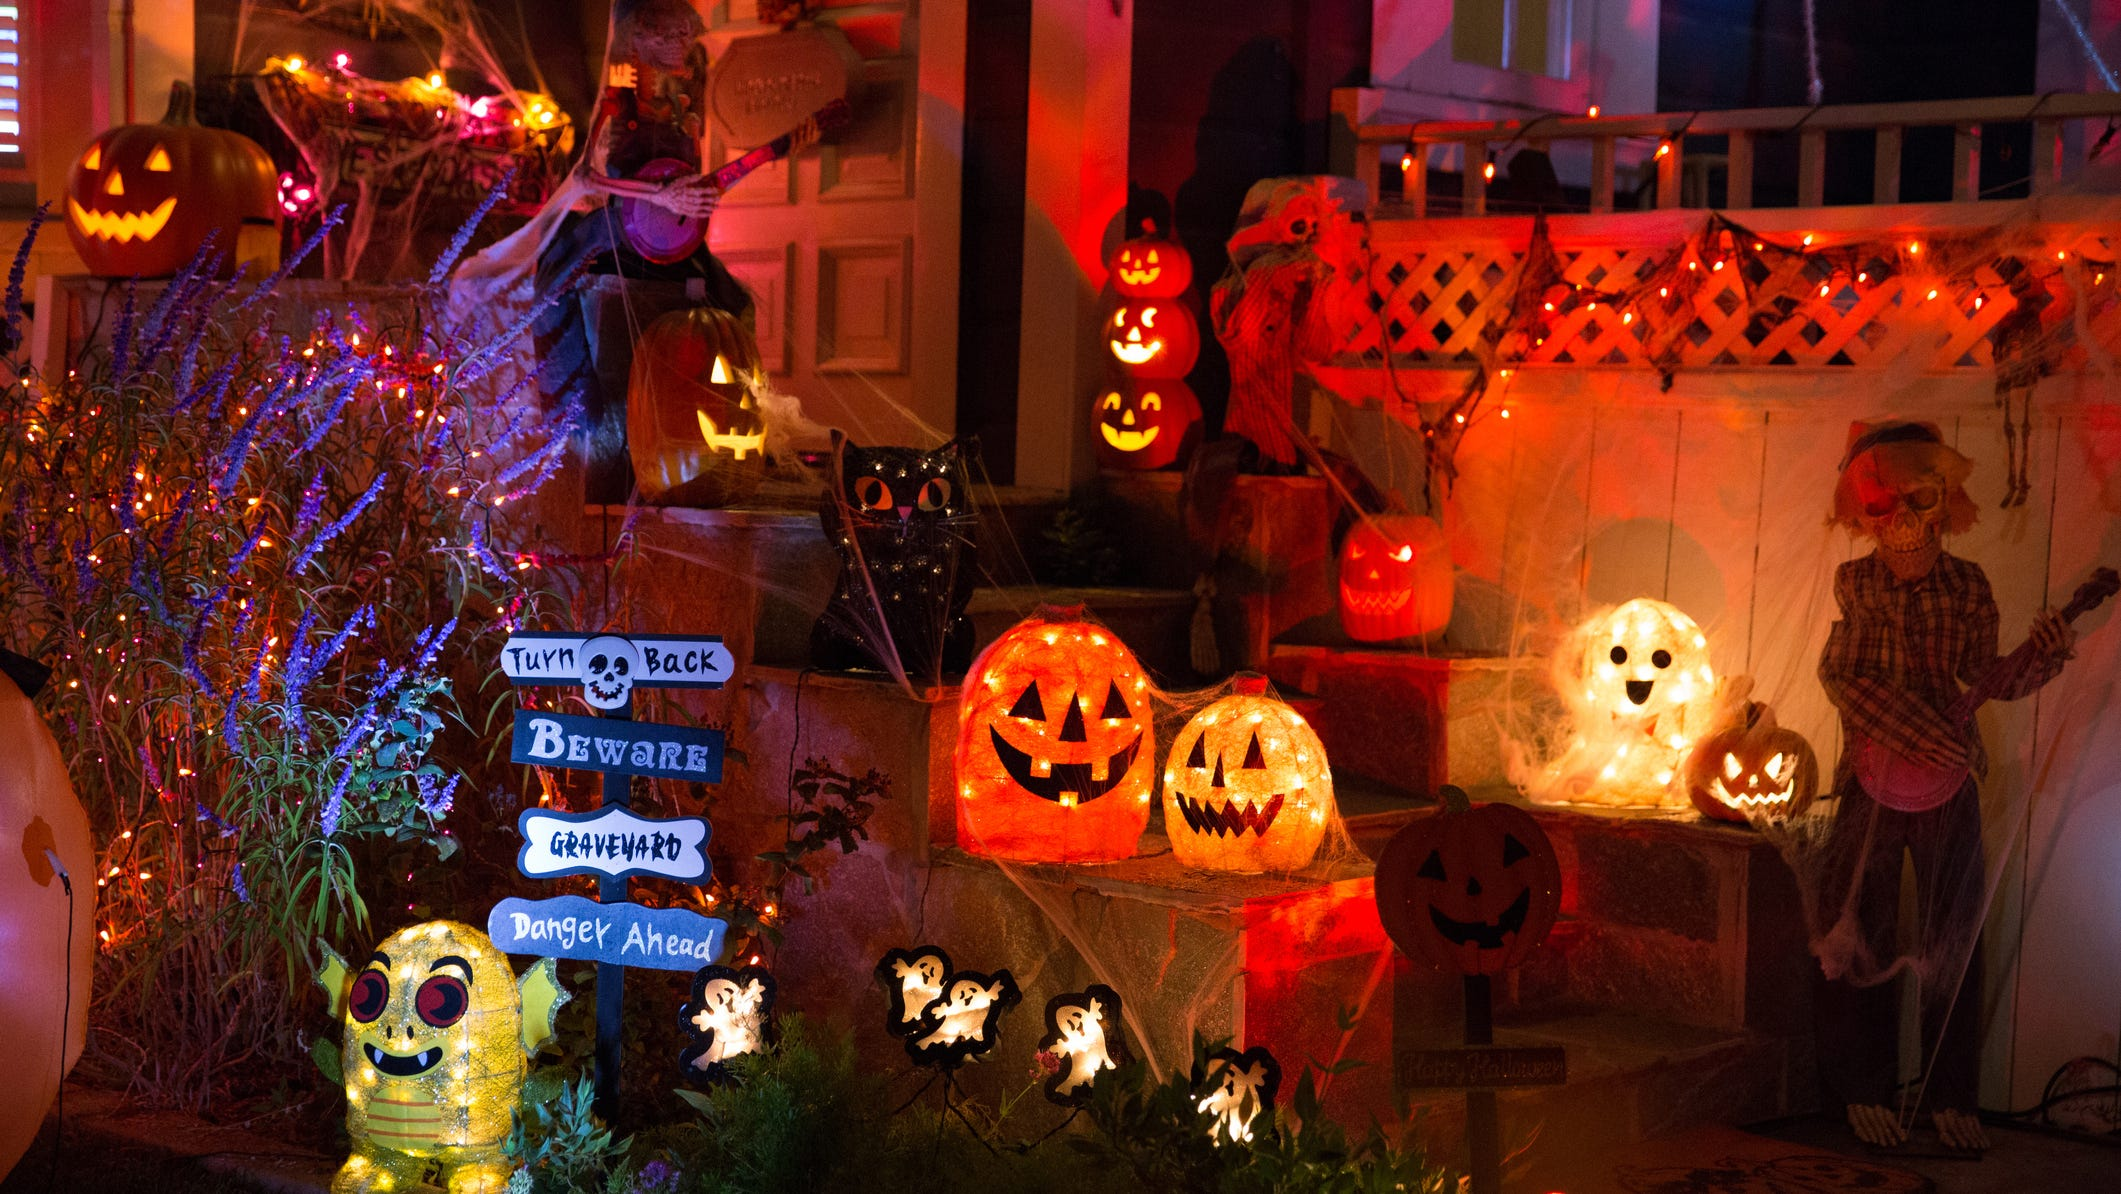 You can get massive discounts on Halloween decorations, candy and more for next year now